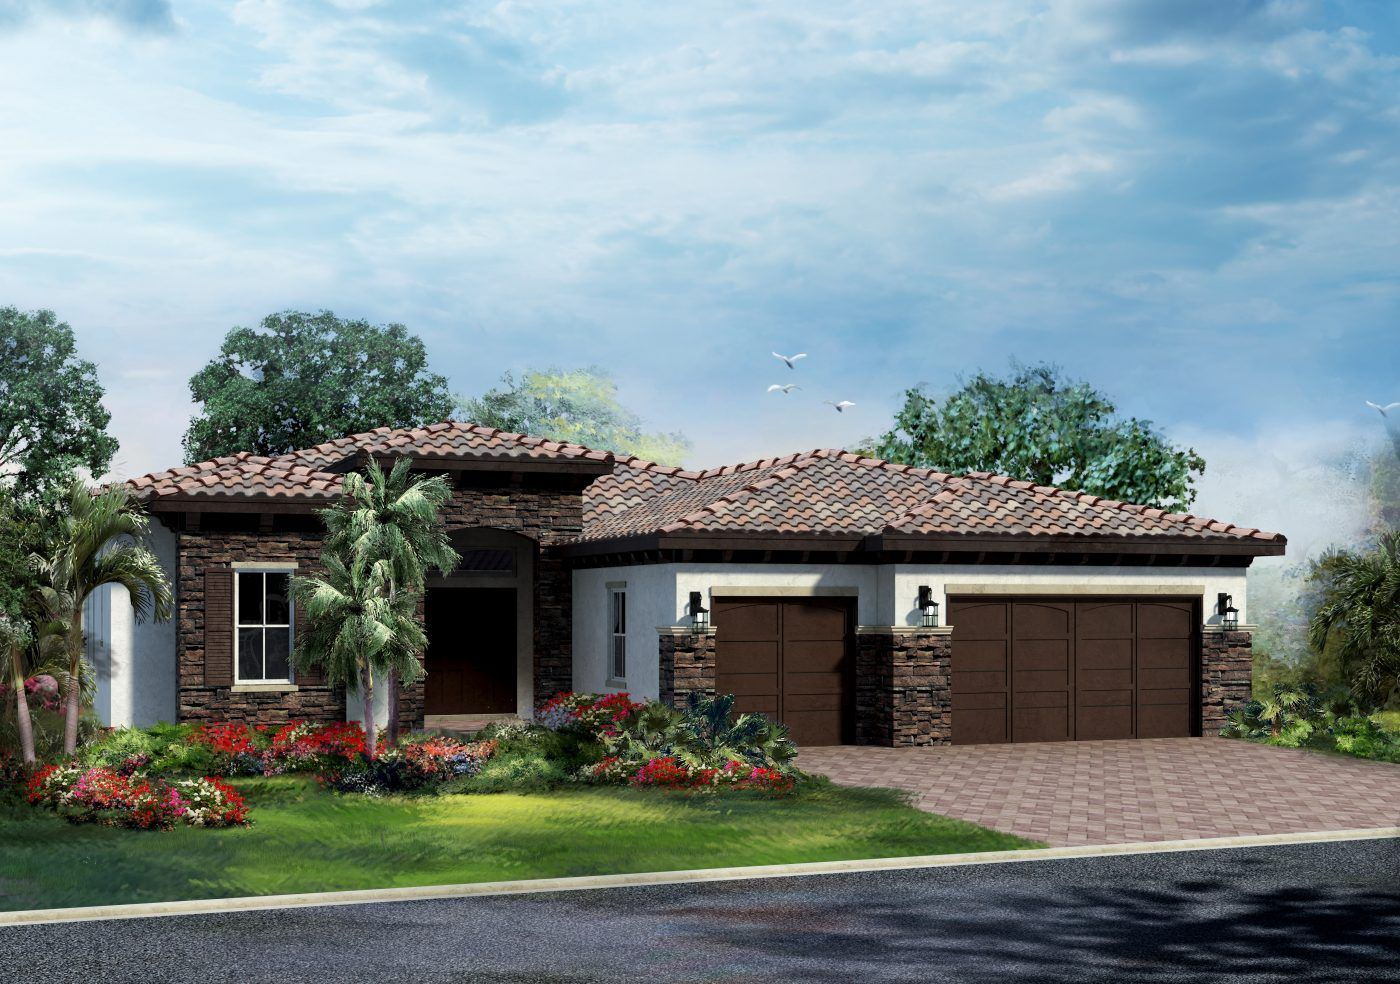 Ranchera   Stillwater Shores By Kennedy Homes: Davie, Florida   Stillwater  Shores